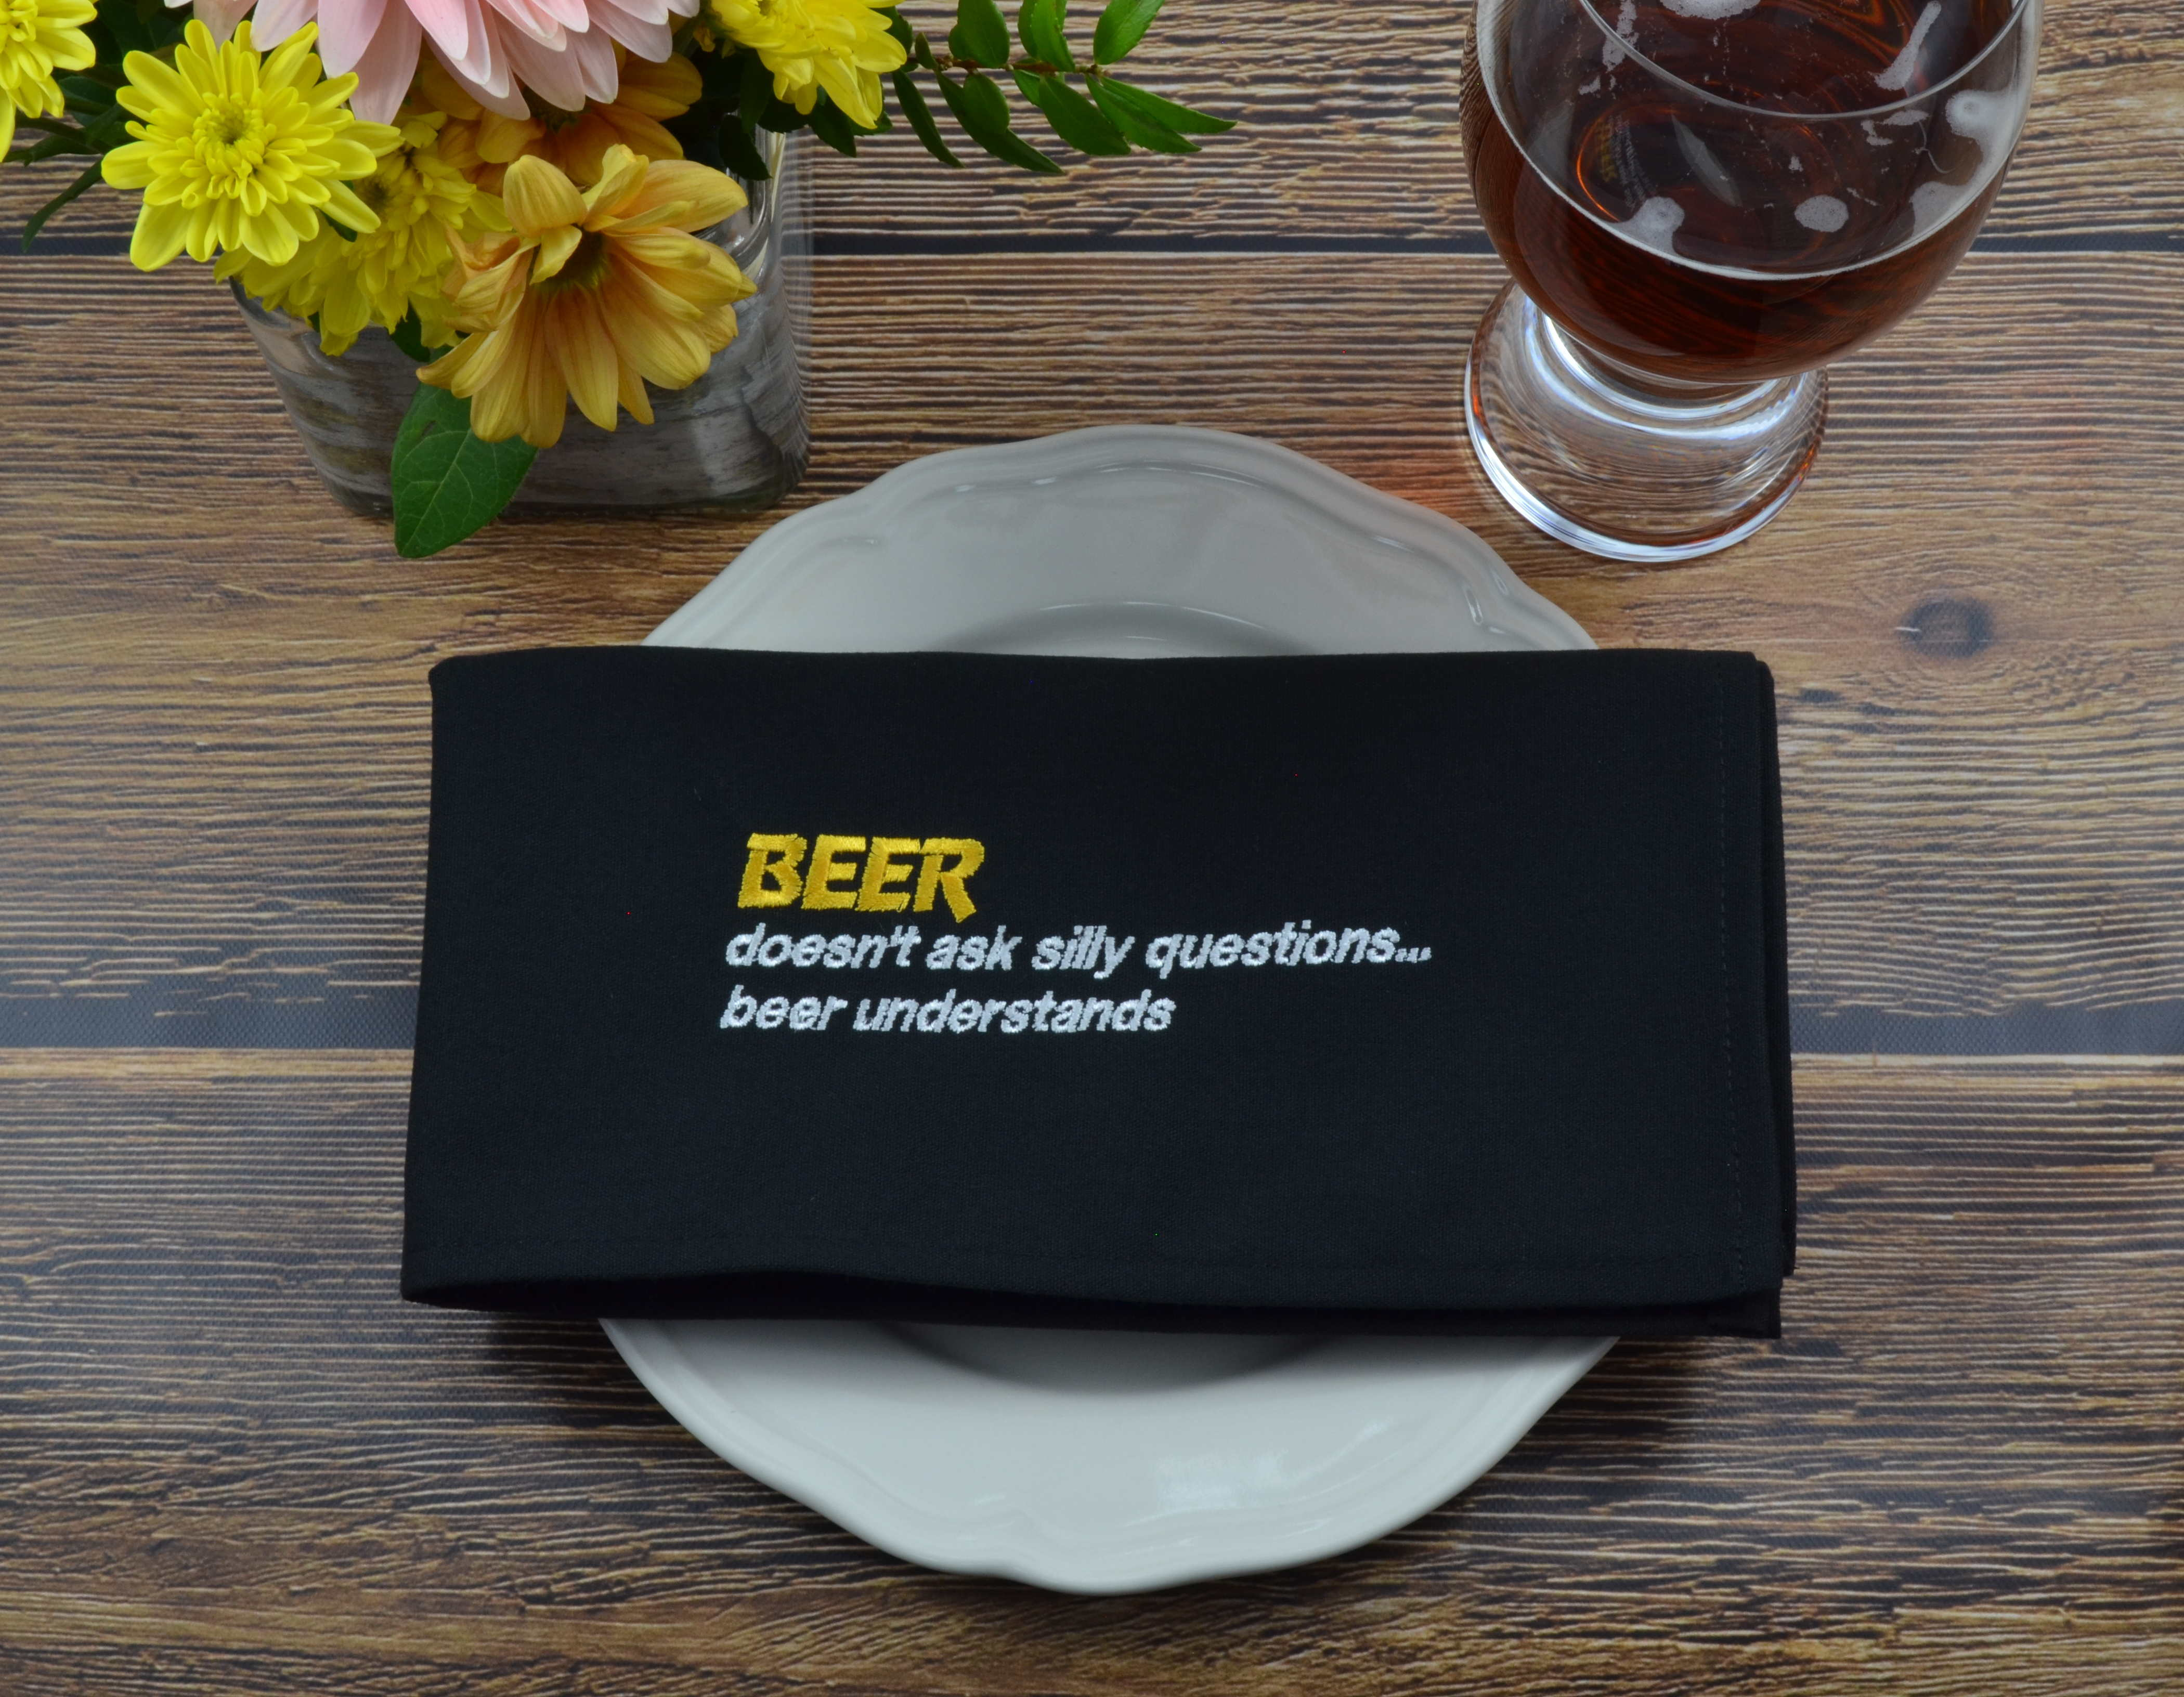 BEER Doesn't Ask Silly Questions, Beer Understands - French Press Linens